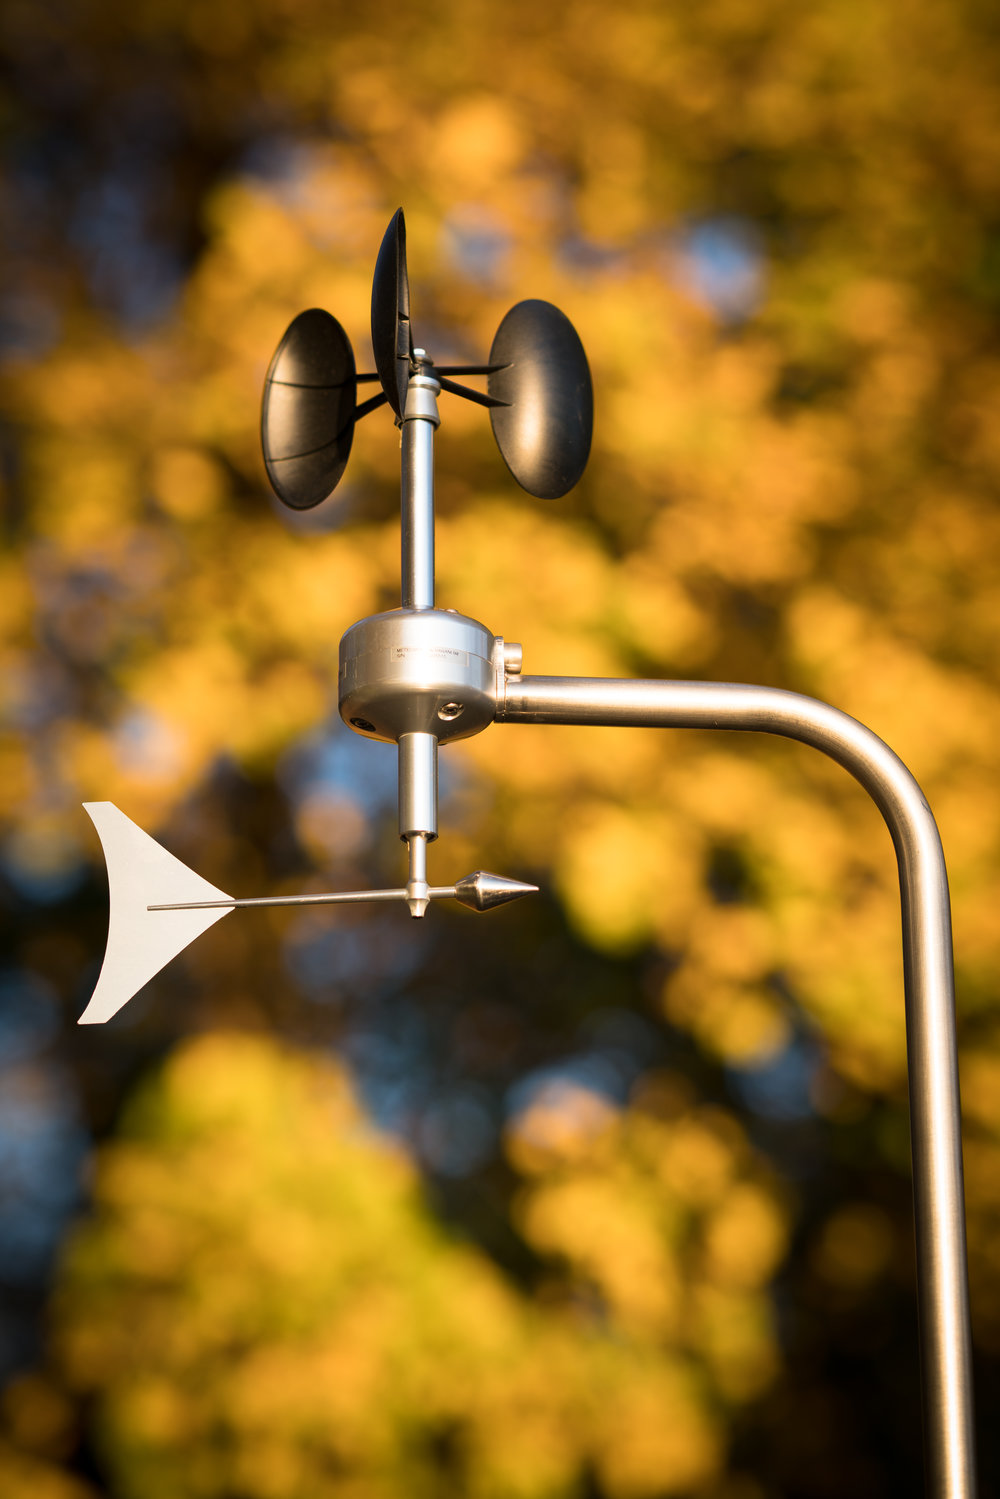 MeteoWind 1 anemometer with wind vane with autumn tree background